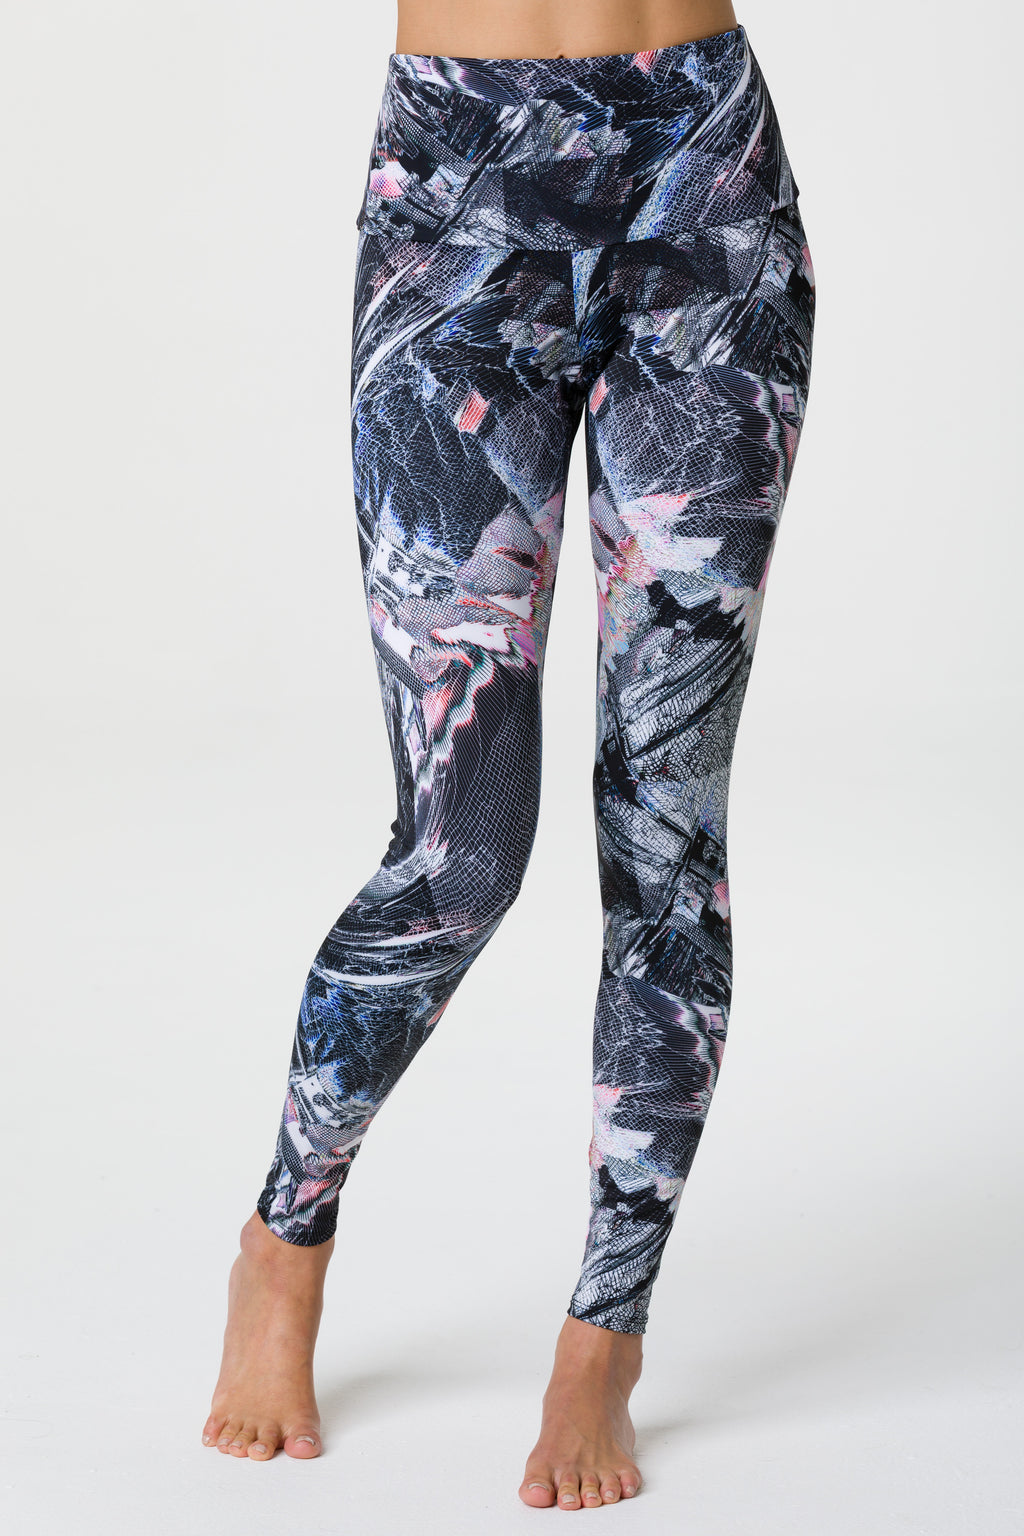 High Rise Graphic Legging: Science Fiction